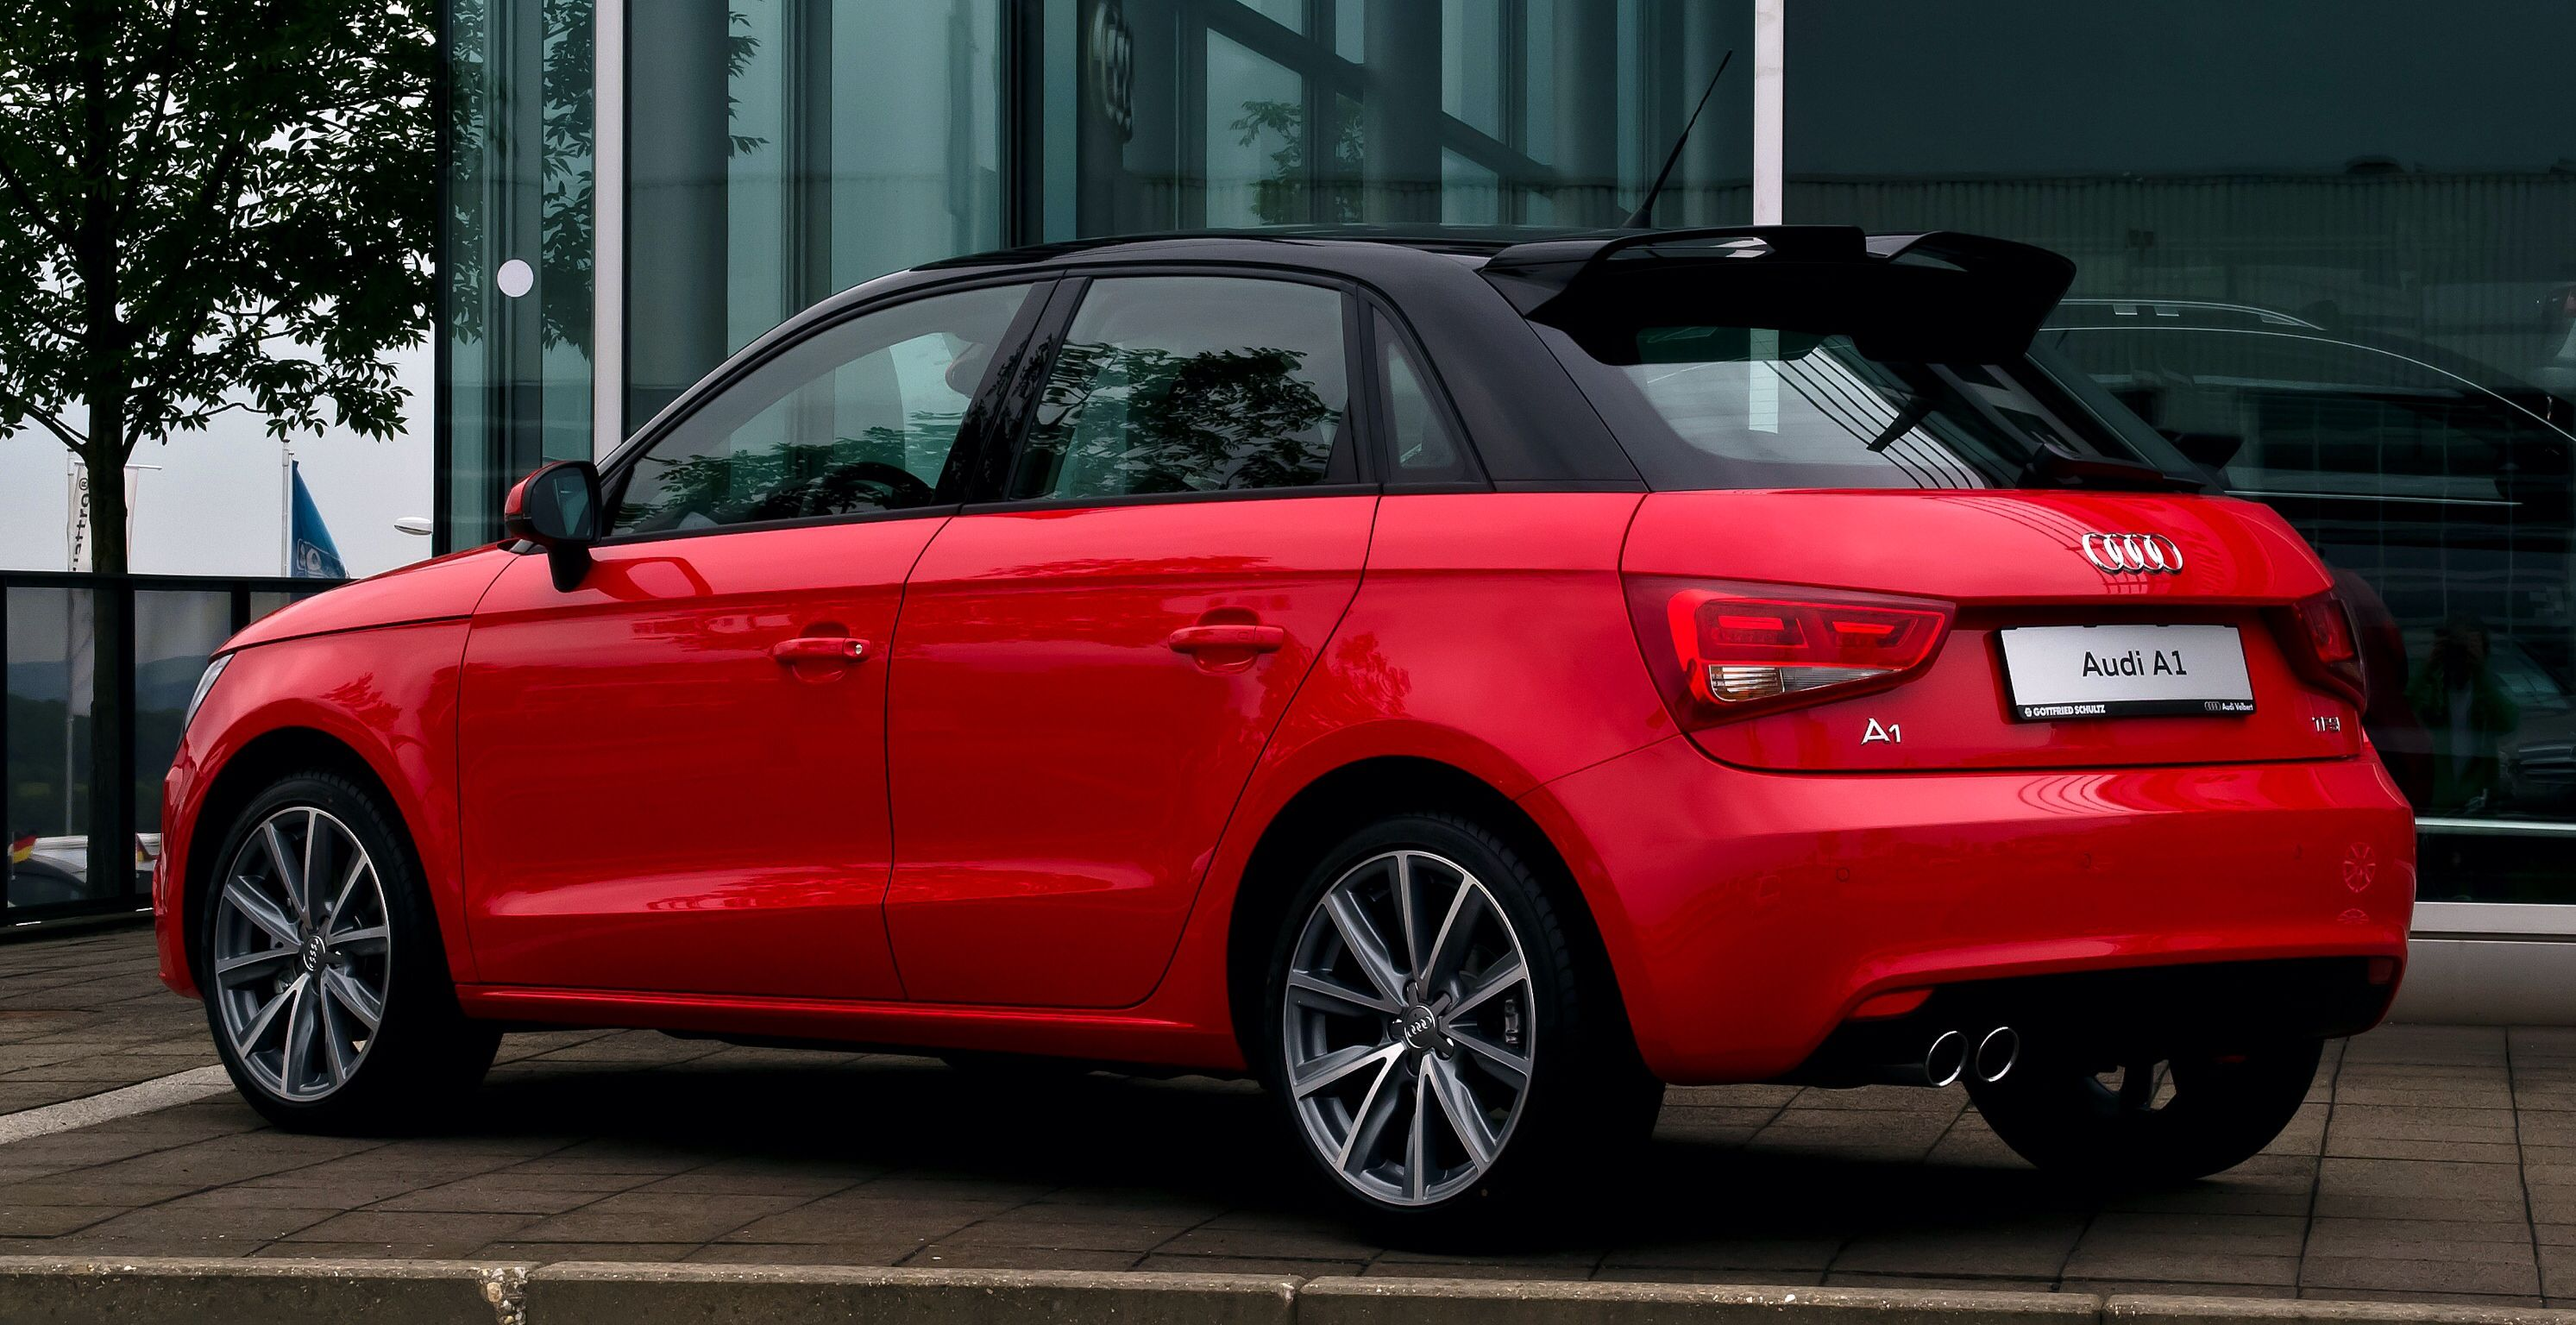 Red Audi A1 Awesome Cars Pinterest